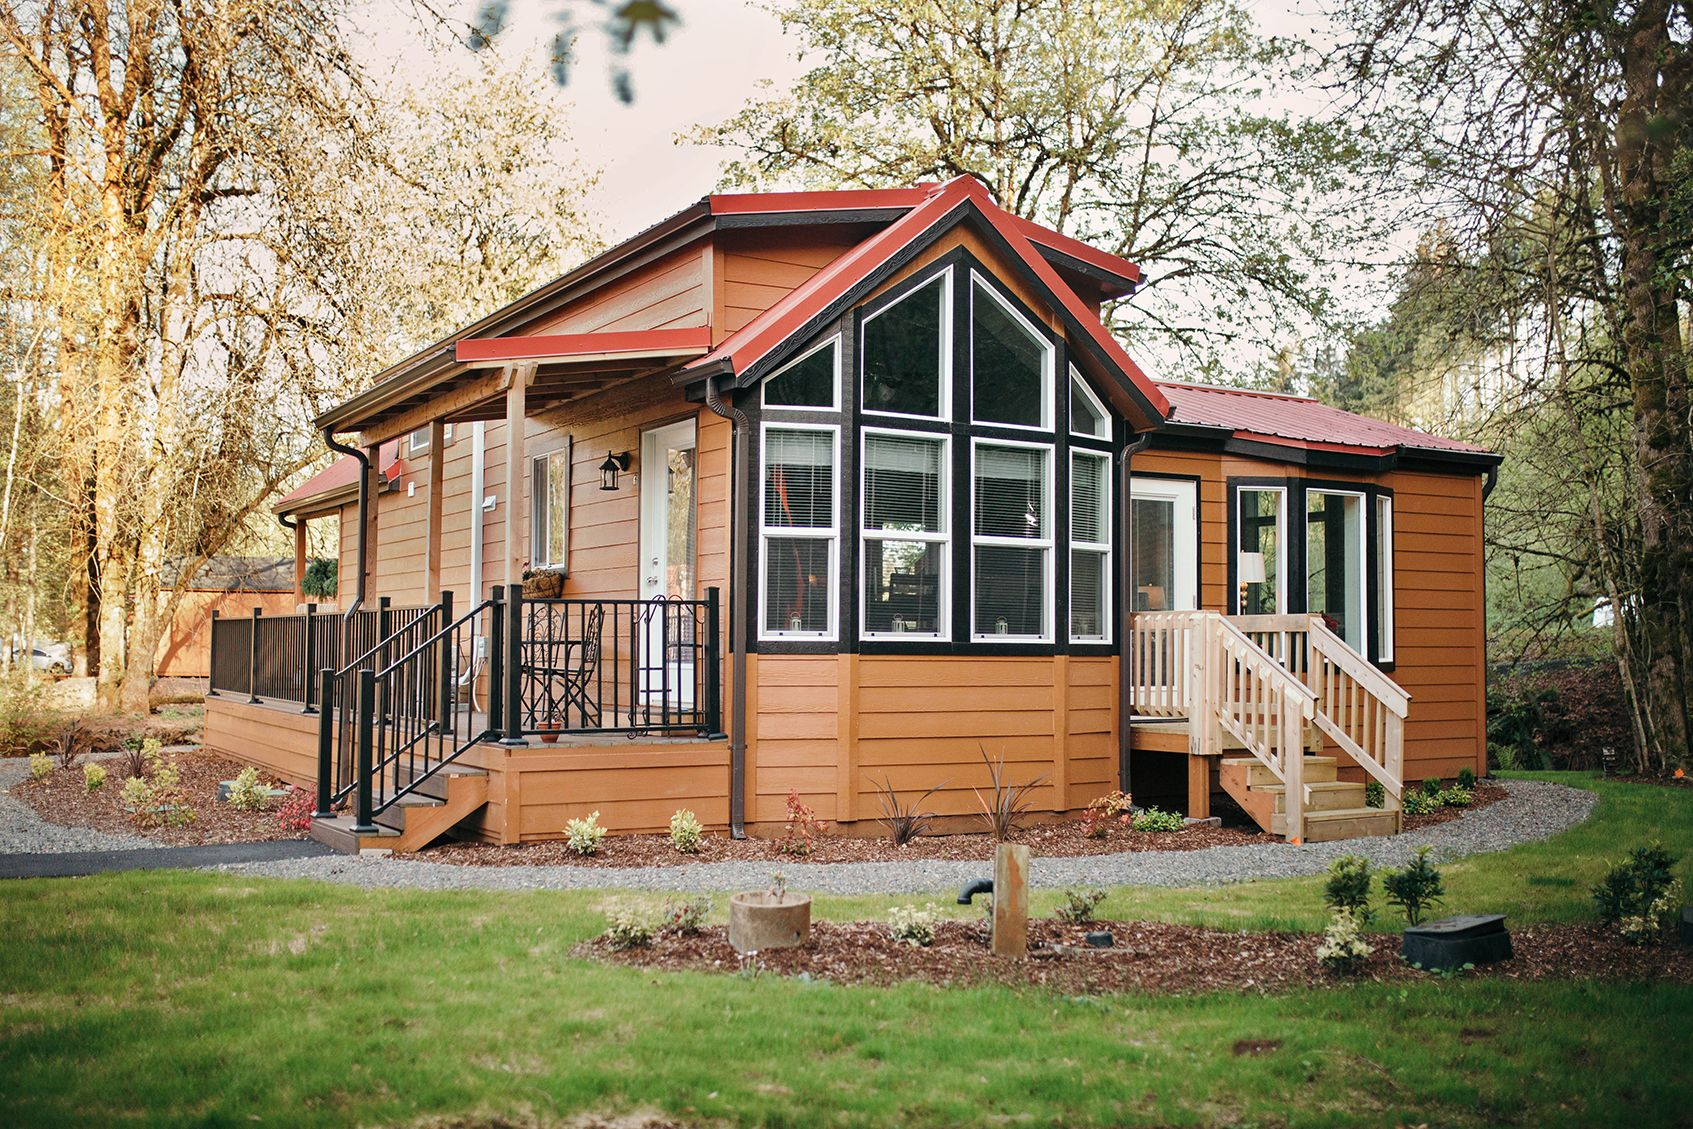 Welcome Hope Valley Resort Tiny House Community Tiny